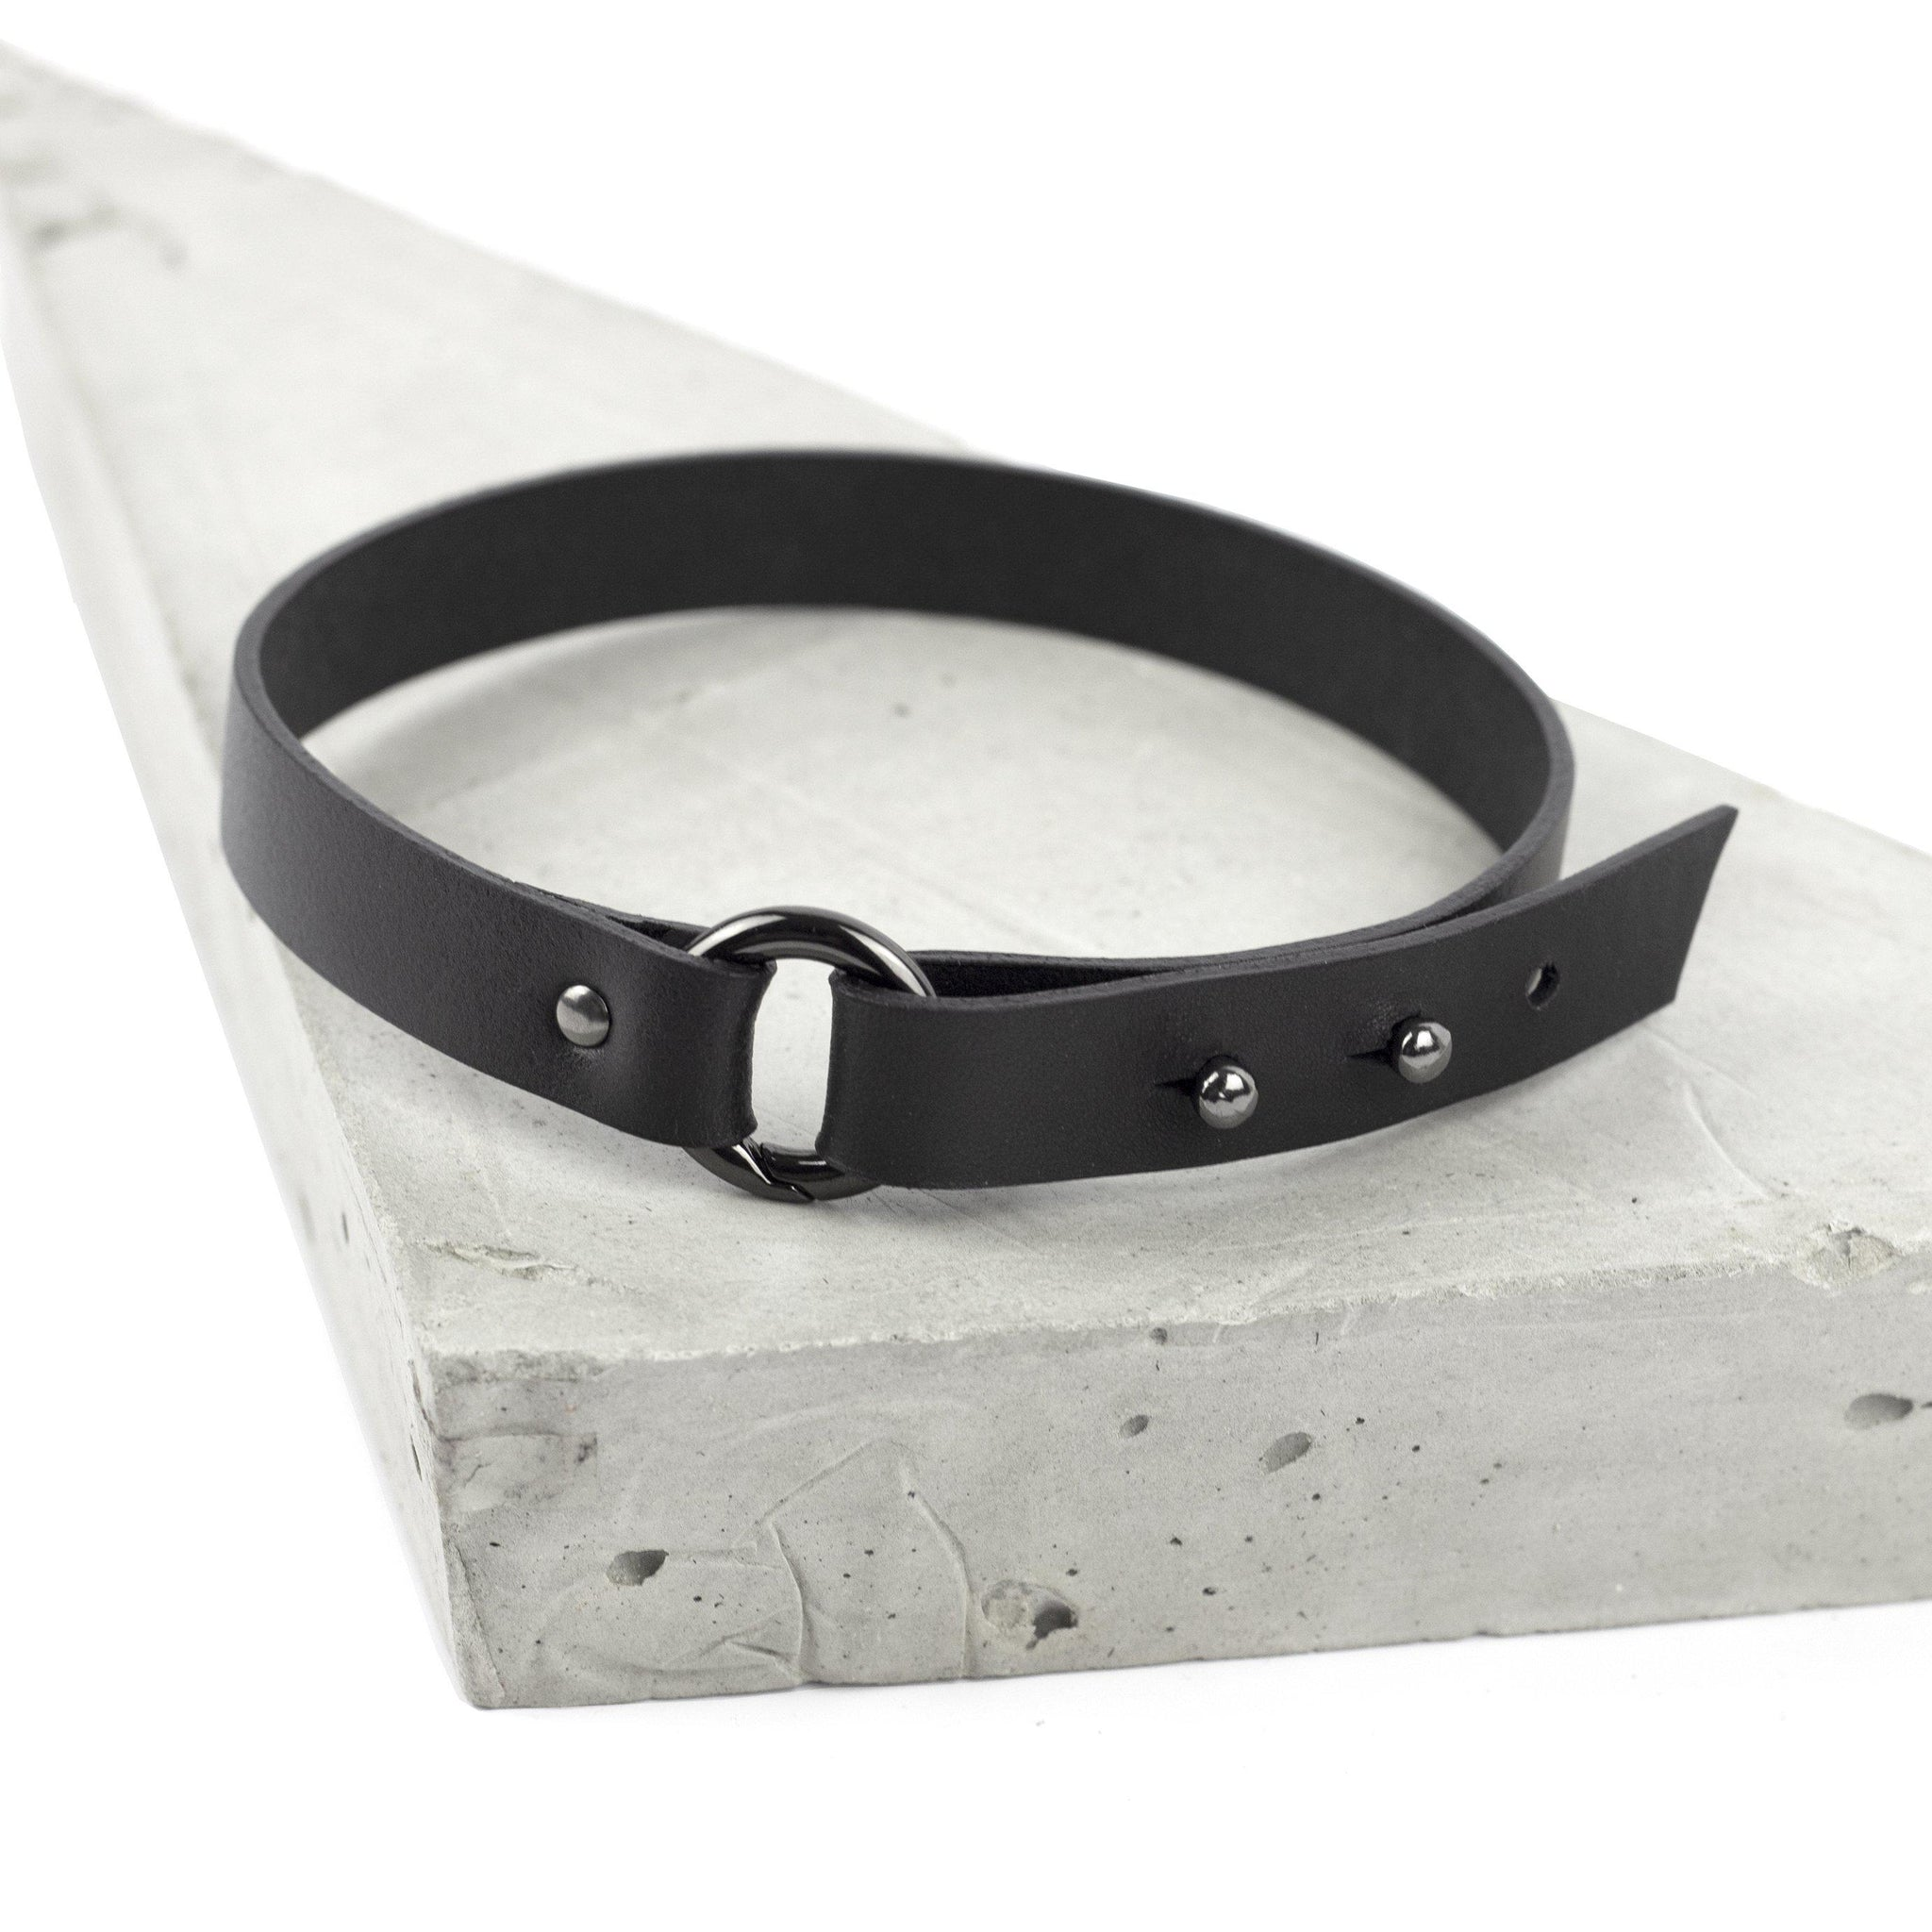 Black leather thin choker adjustable necklace minimal collar